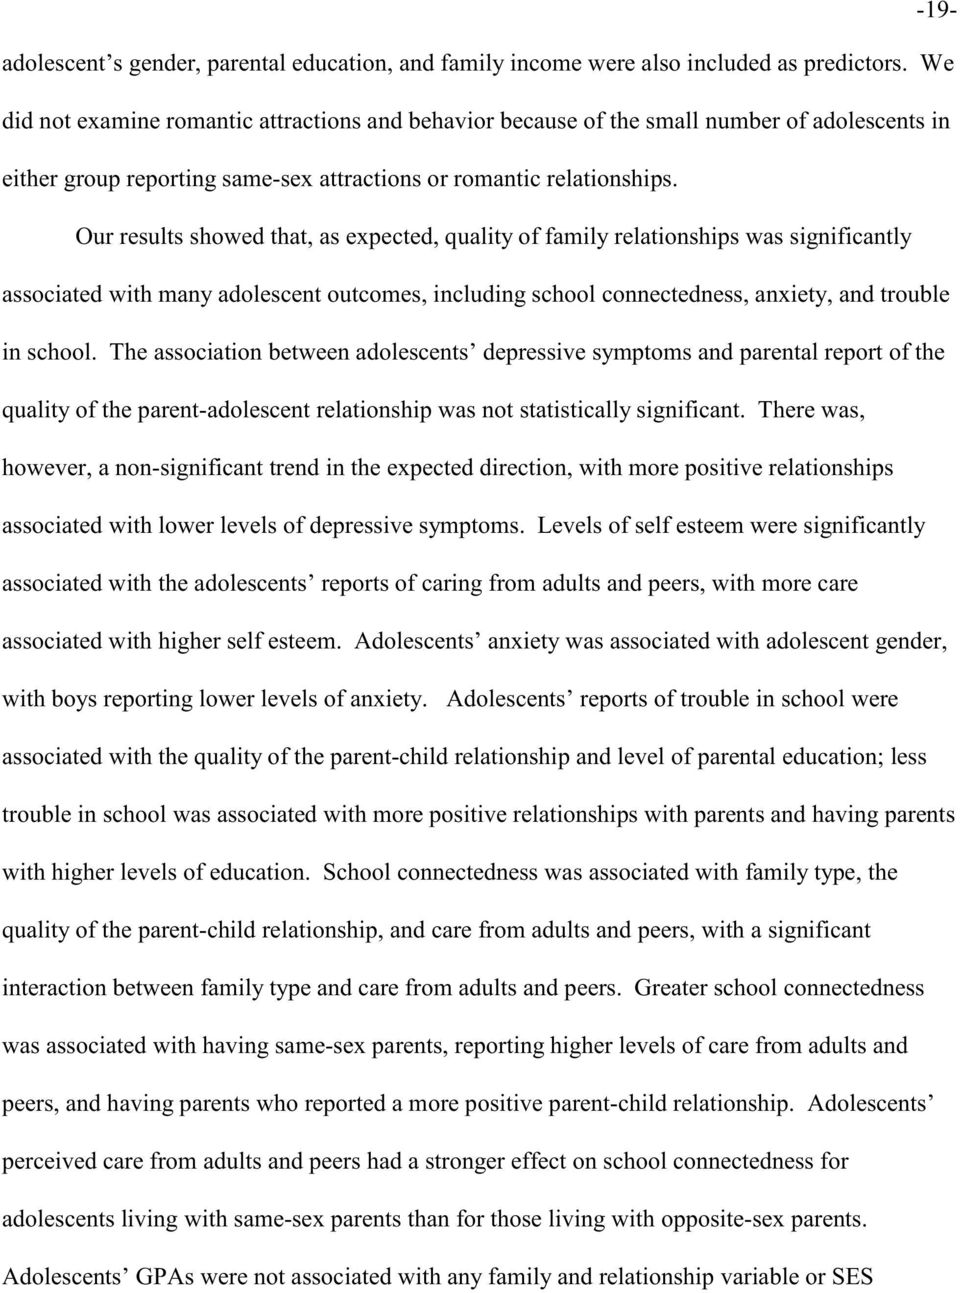 Our results showed that, as expected, quality of family relationships was significantly associated with many adolescent outcomes, including school connectedness, anxiety, and trouble in school.